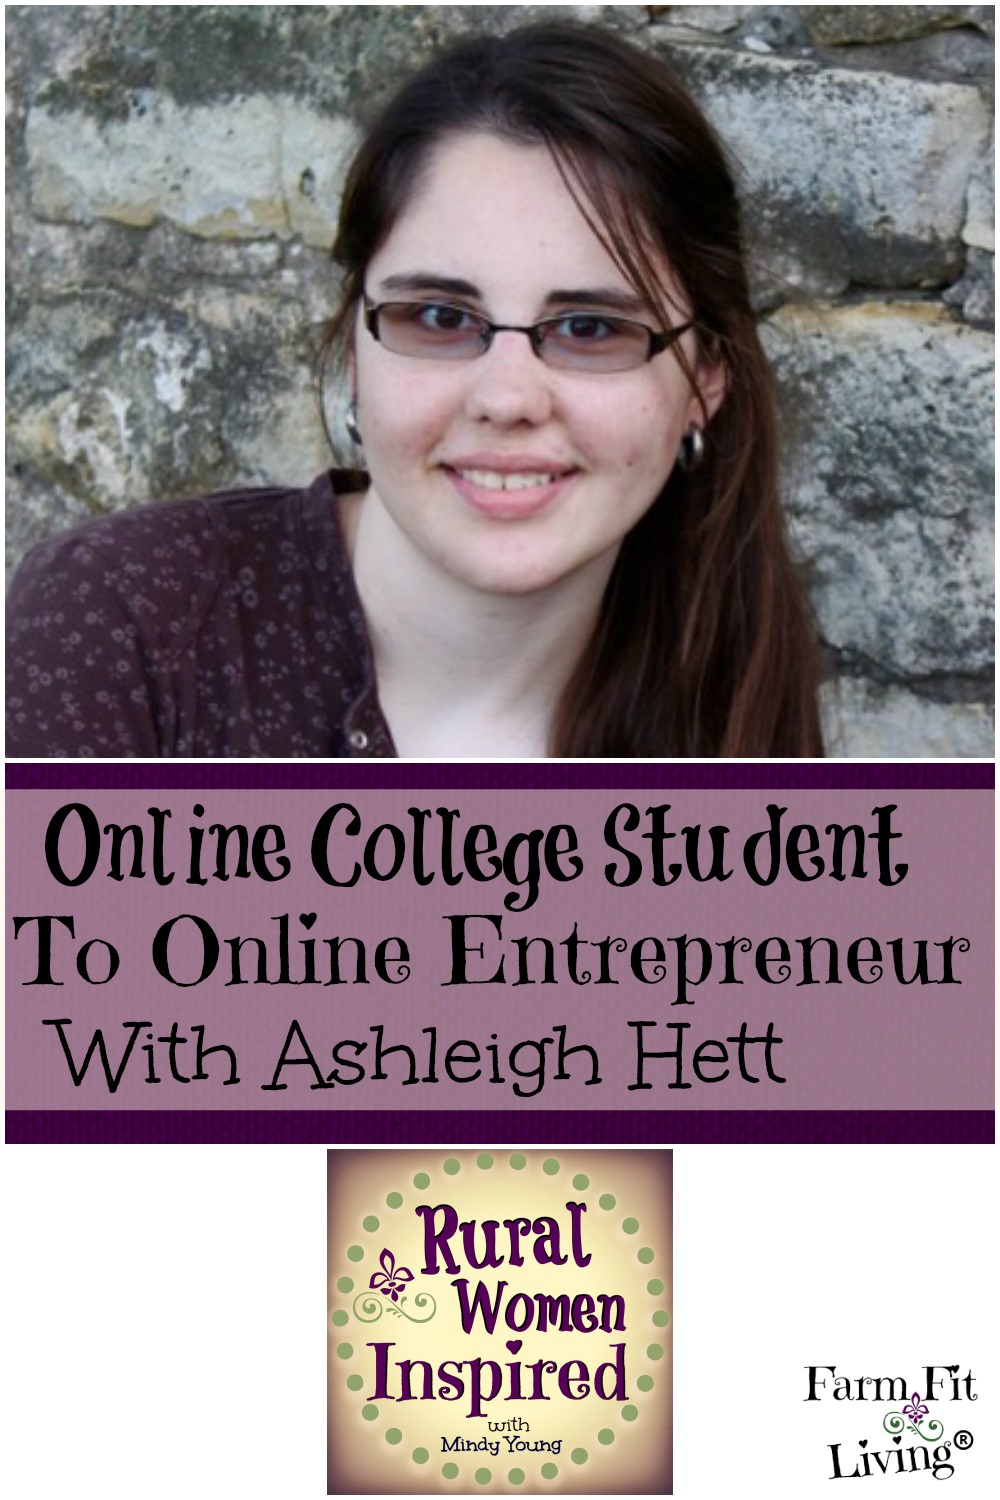 Online College Student to Online Entrepreneur